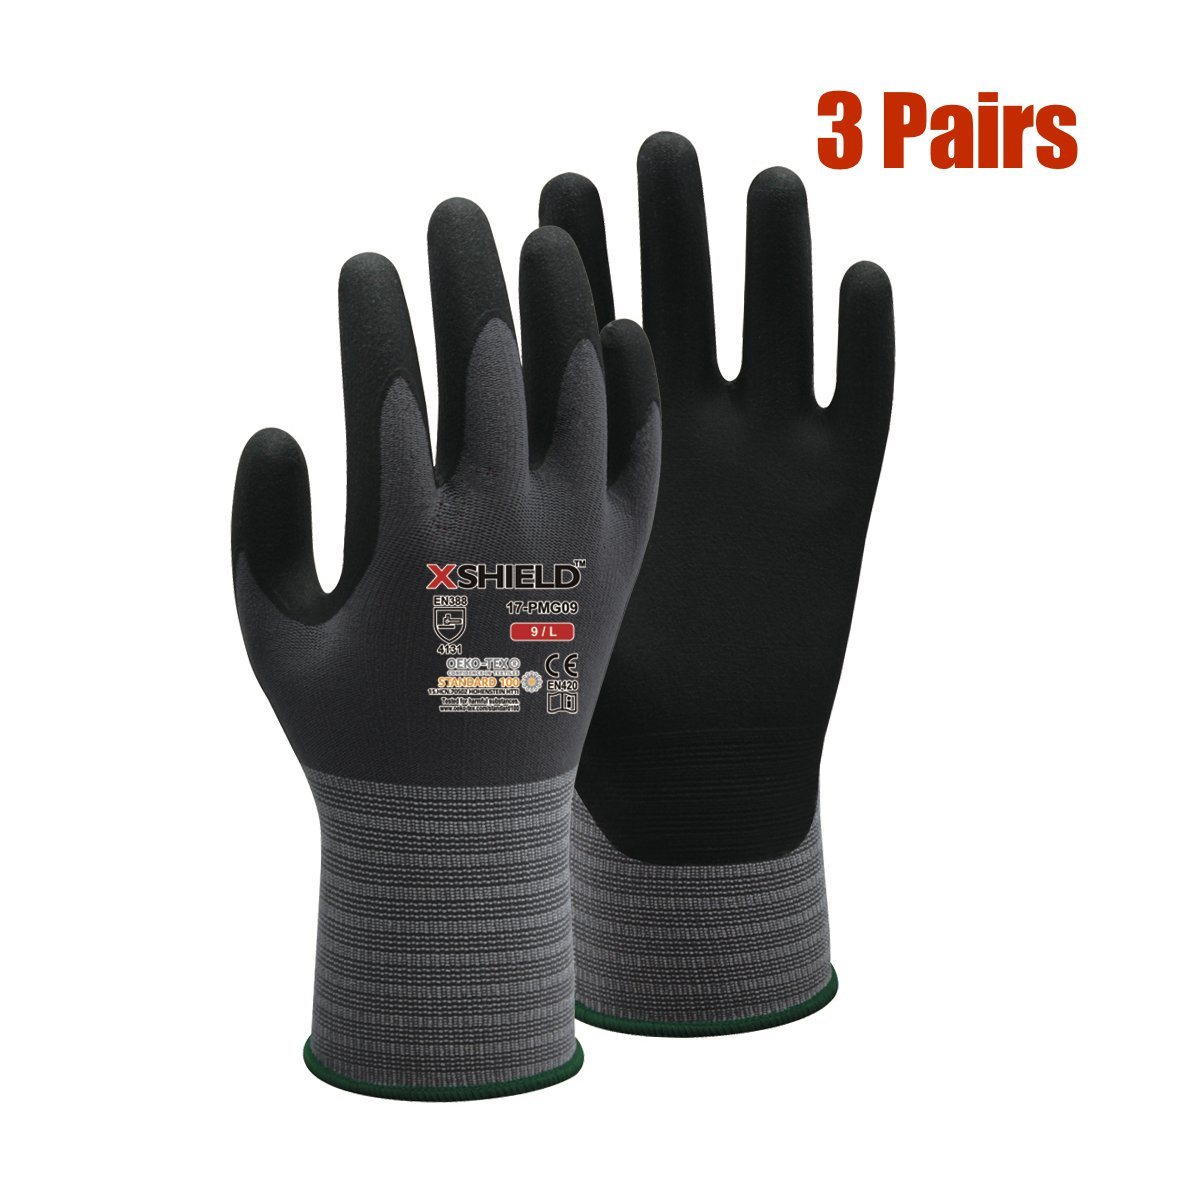 XSHIELD 17-PMG,Ultimate Micro Foam Nitrile Grip Safety Work Gloves for General Purpose, OKEO-Tex Certificated,Ideal for Auto Repair, Home Improvement,3 Pairs(Medium)